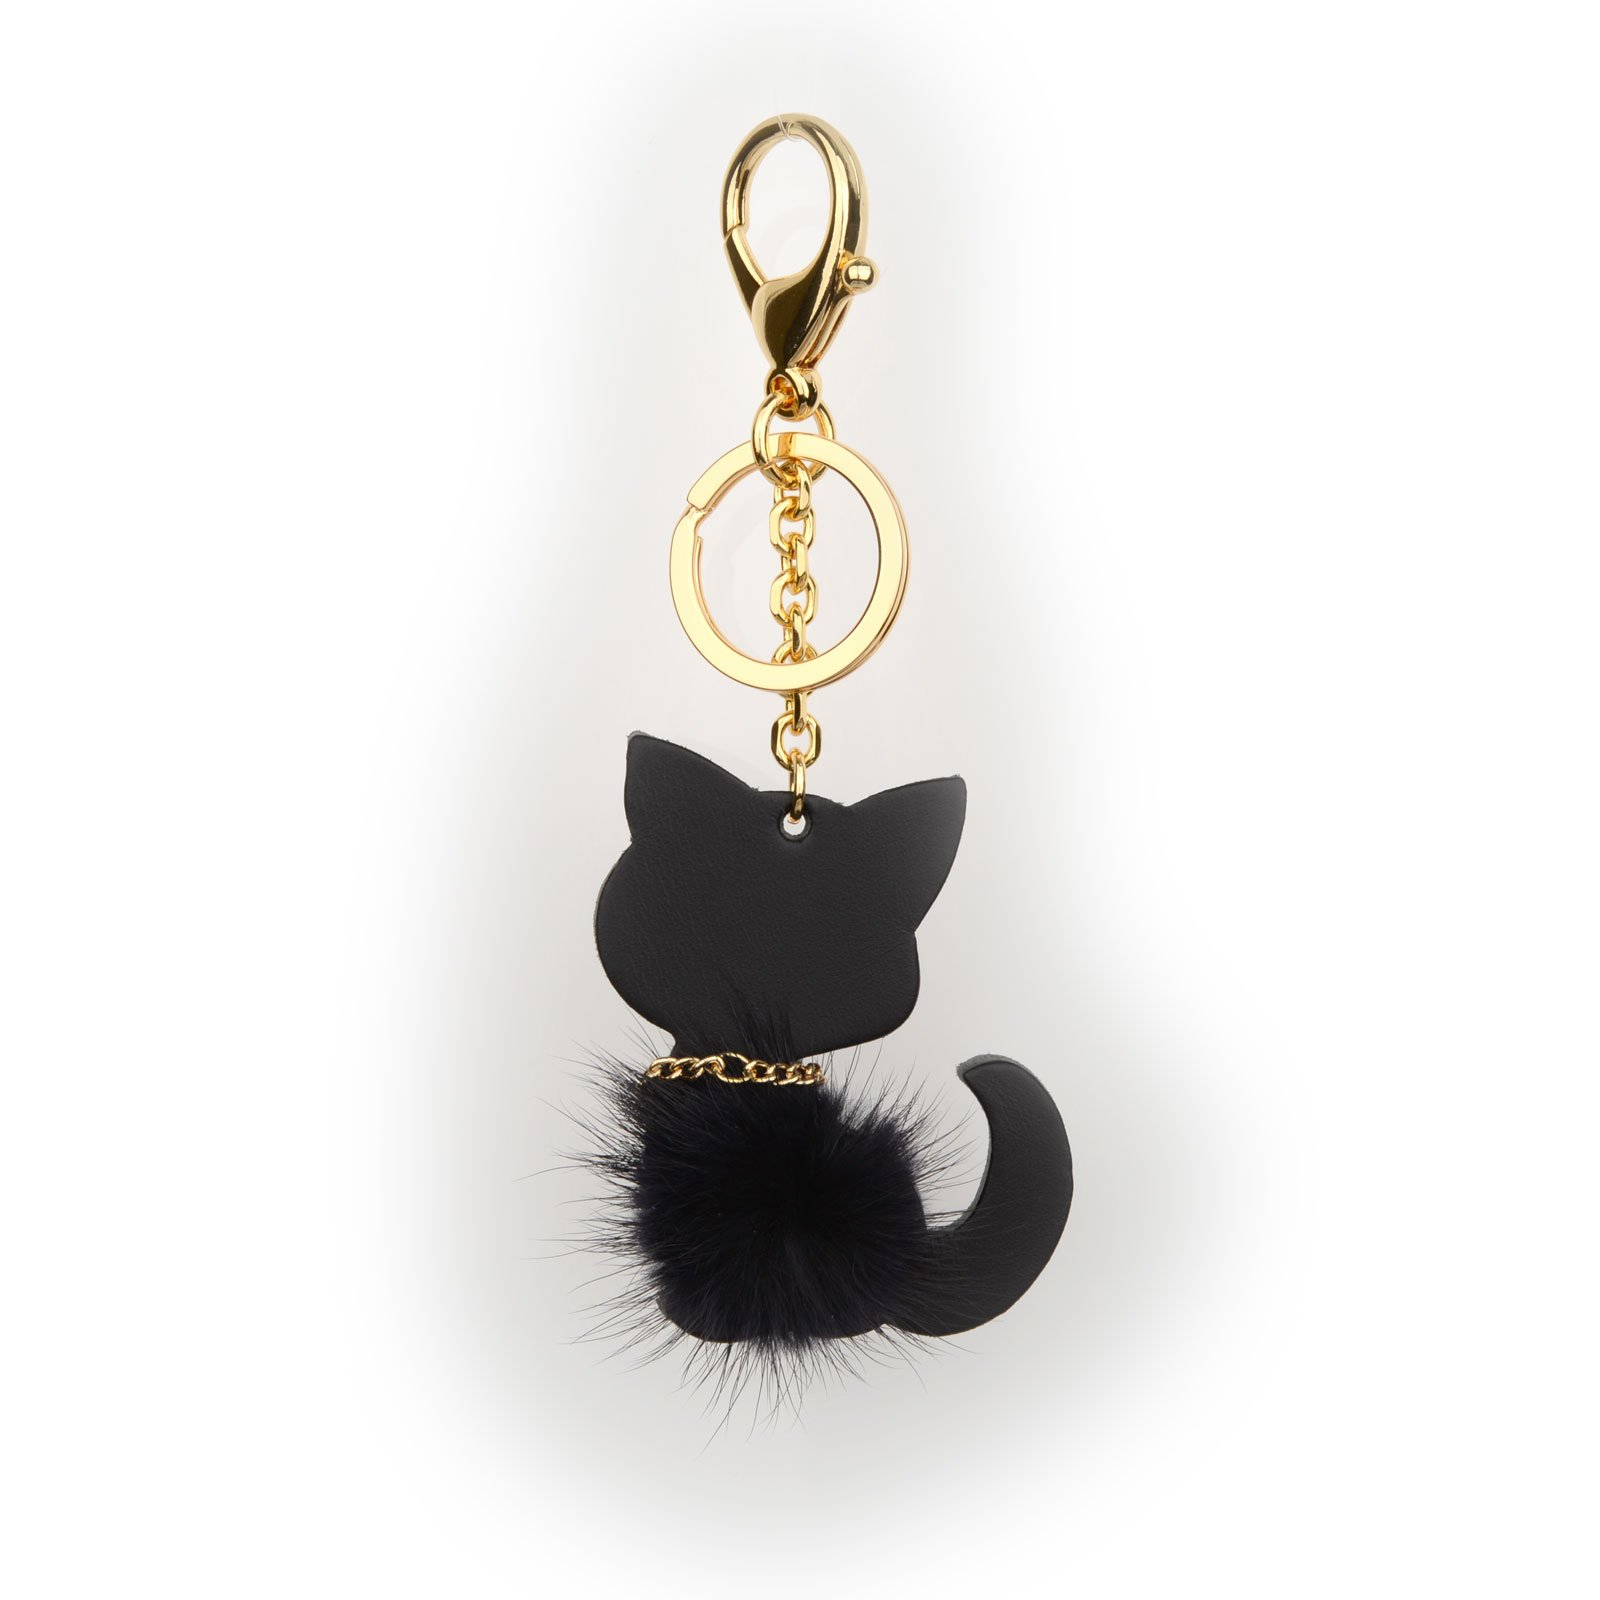 Richbud Cute Black Cat Leather Tassel Keychain Handbag Purse Charm Key Ring (Cat-Mink)